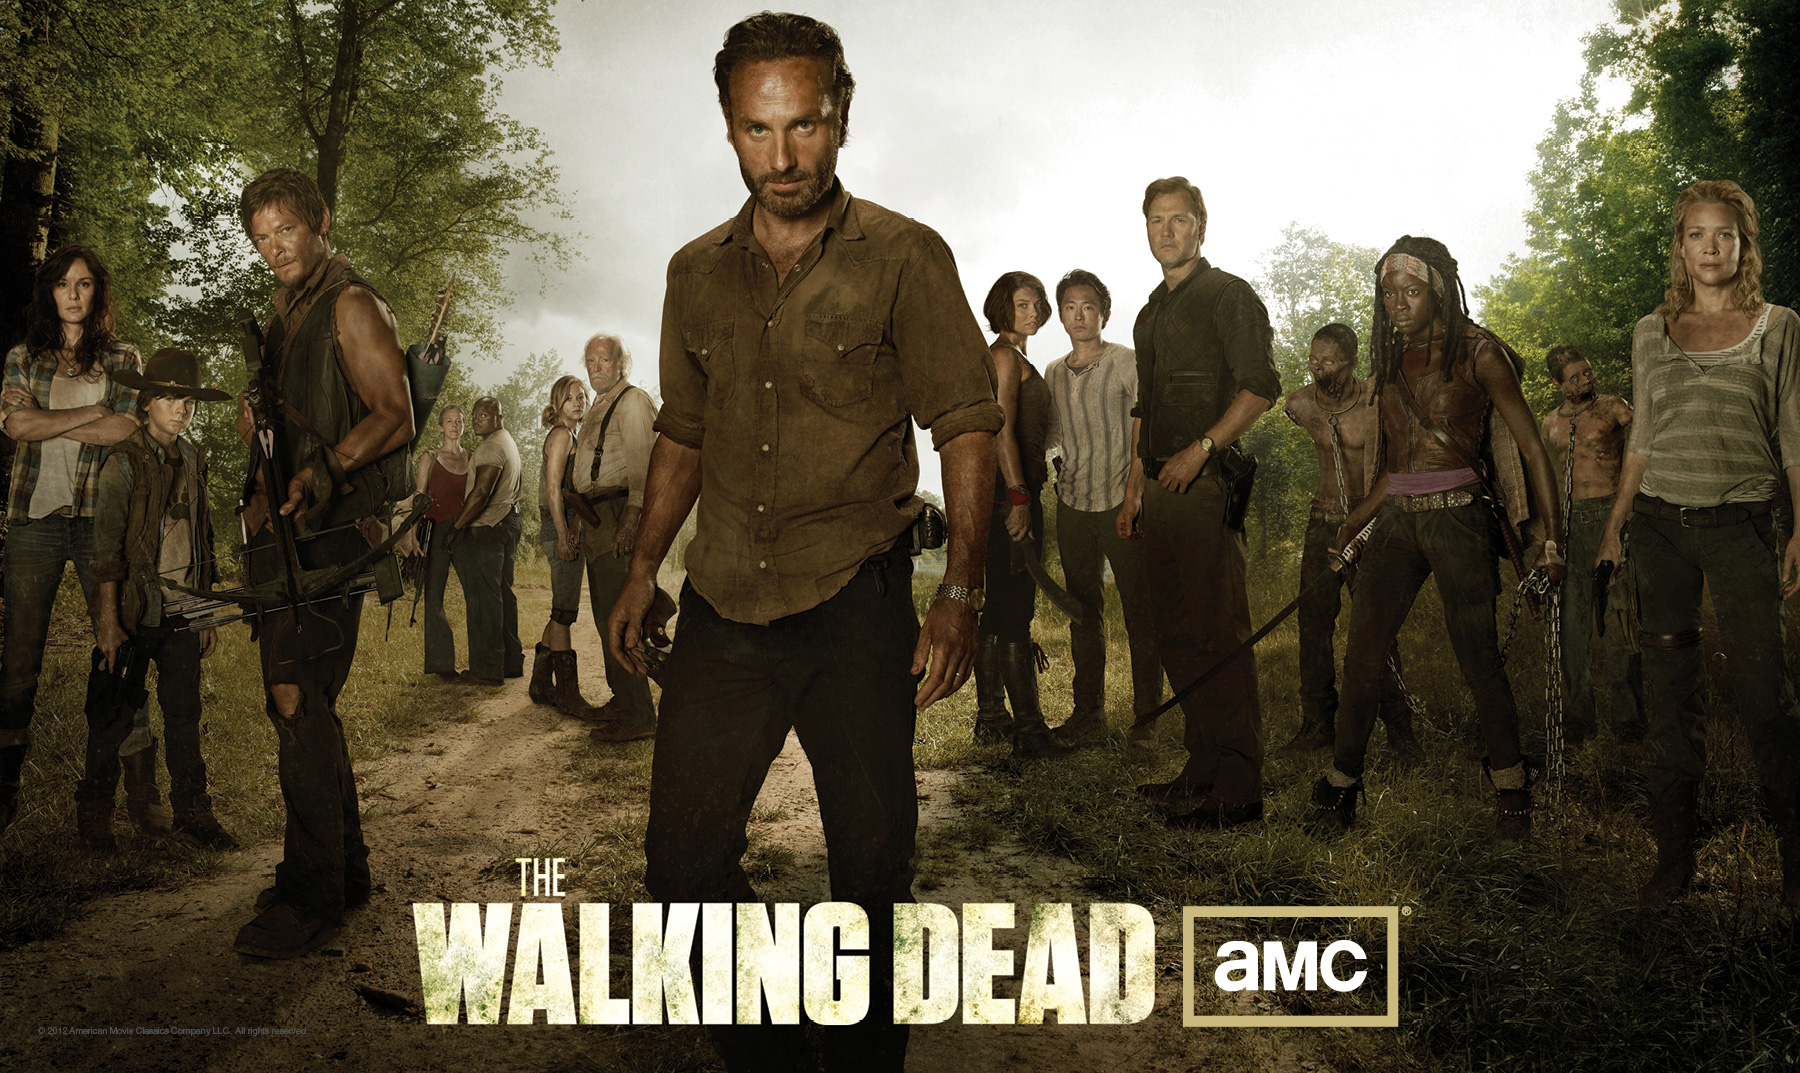 https://i1.wp.com/www.walking-dead.fr/wp-content/gallery/affiche-promo-the-walking-dead-saison-3/the-walking-dead-saison-3-affiche-promo-2.jpg